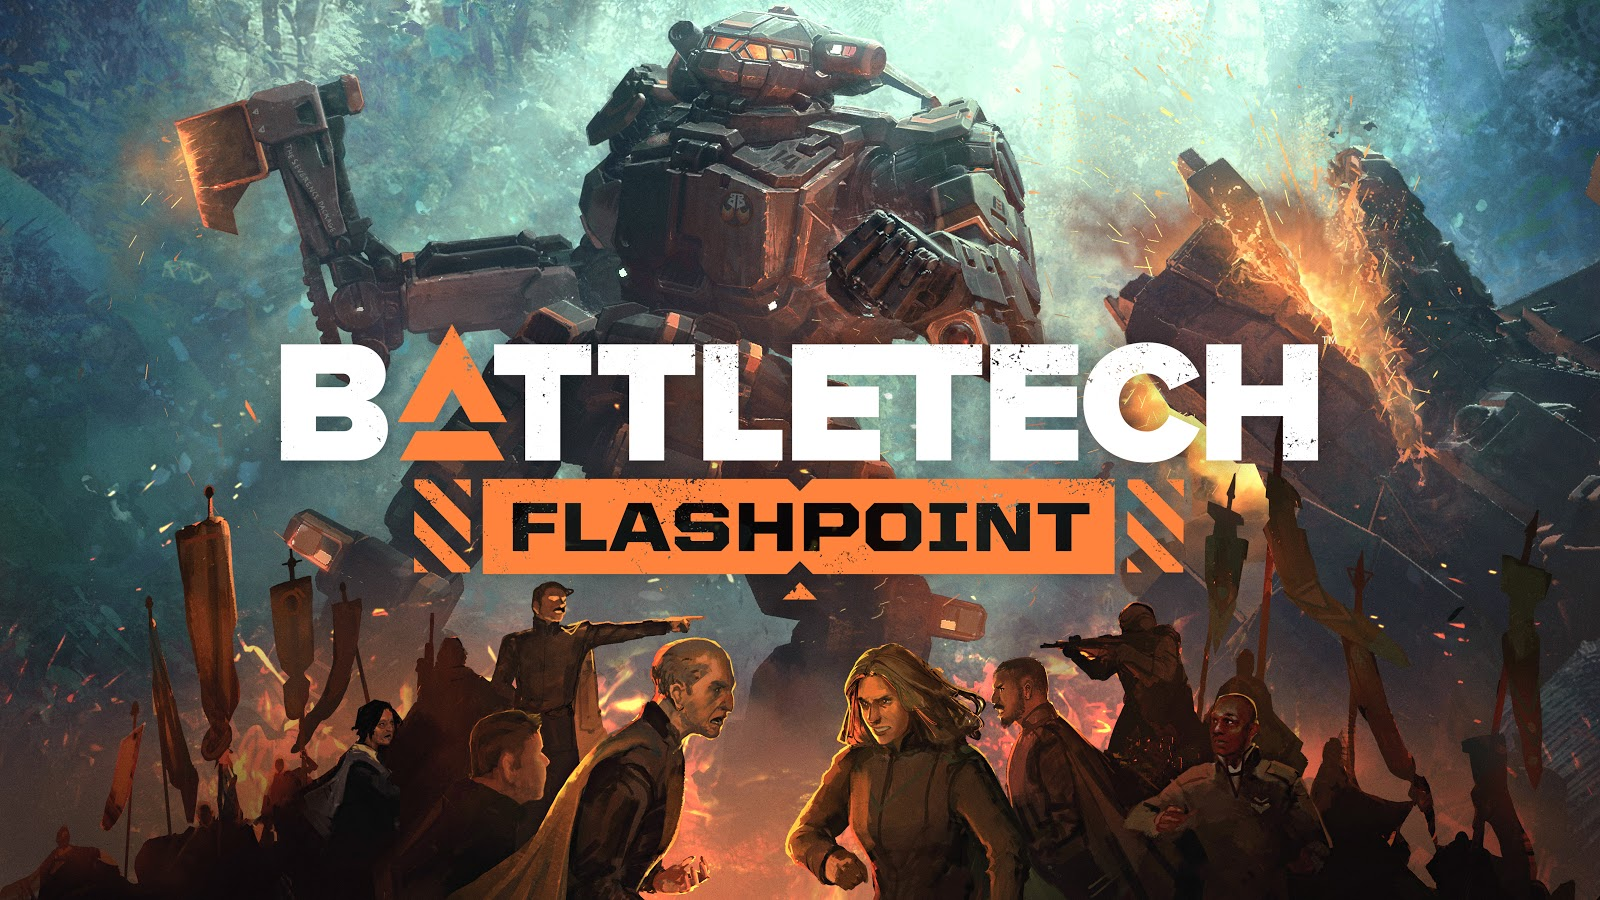 Start your Fusion Engines! BATTLETECH: Flashpoint is NOW AVAILABLE